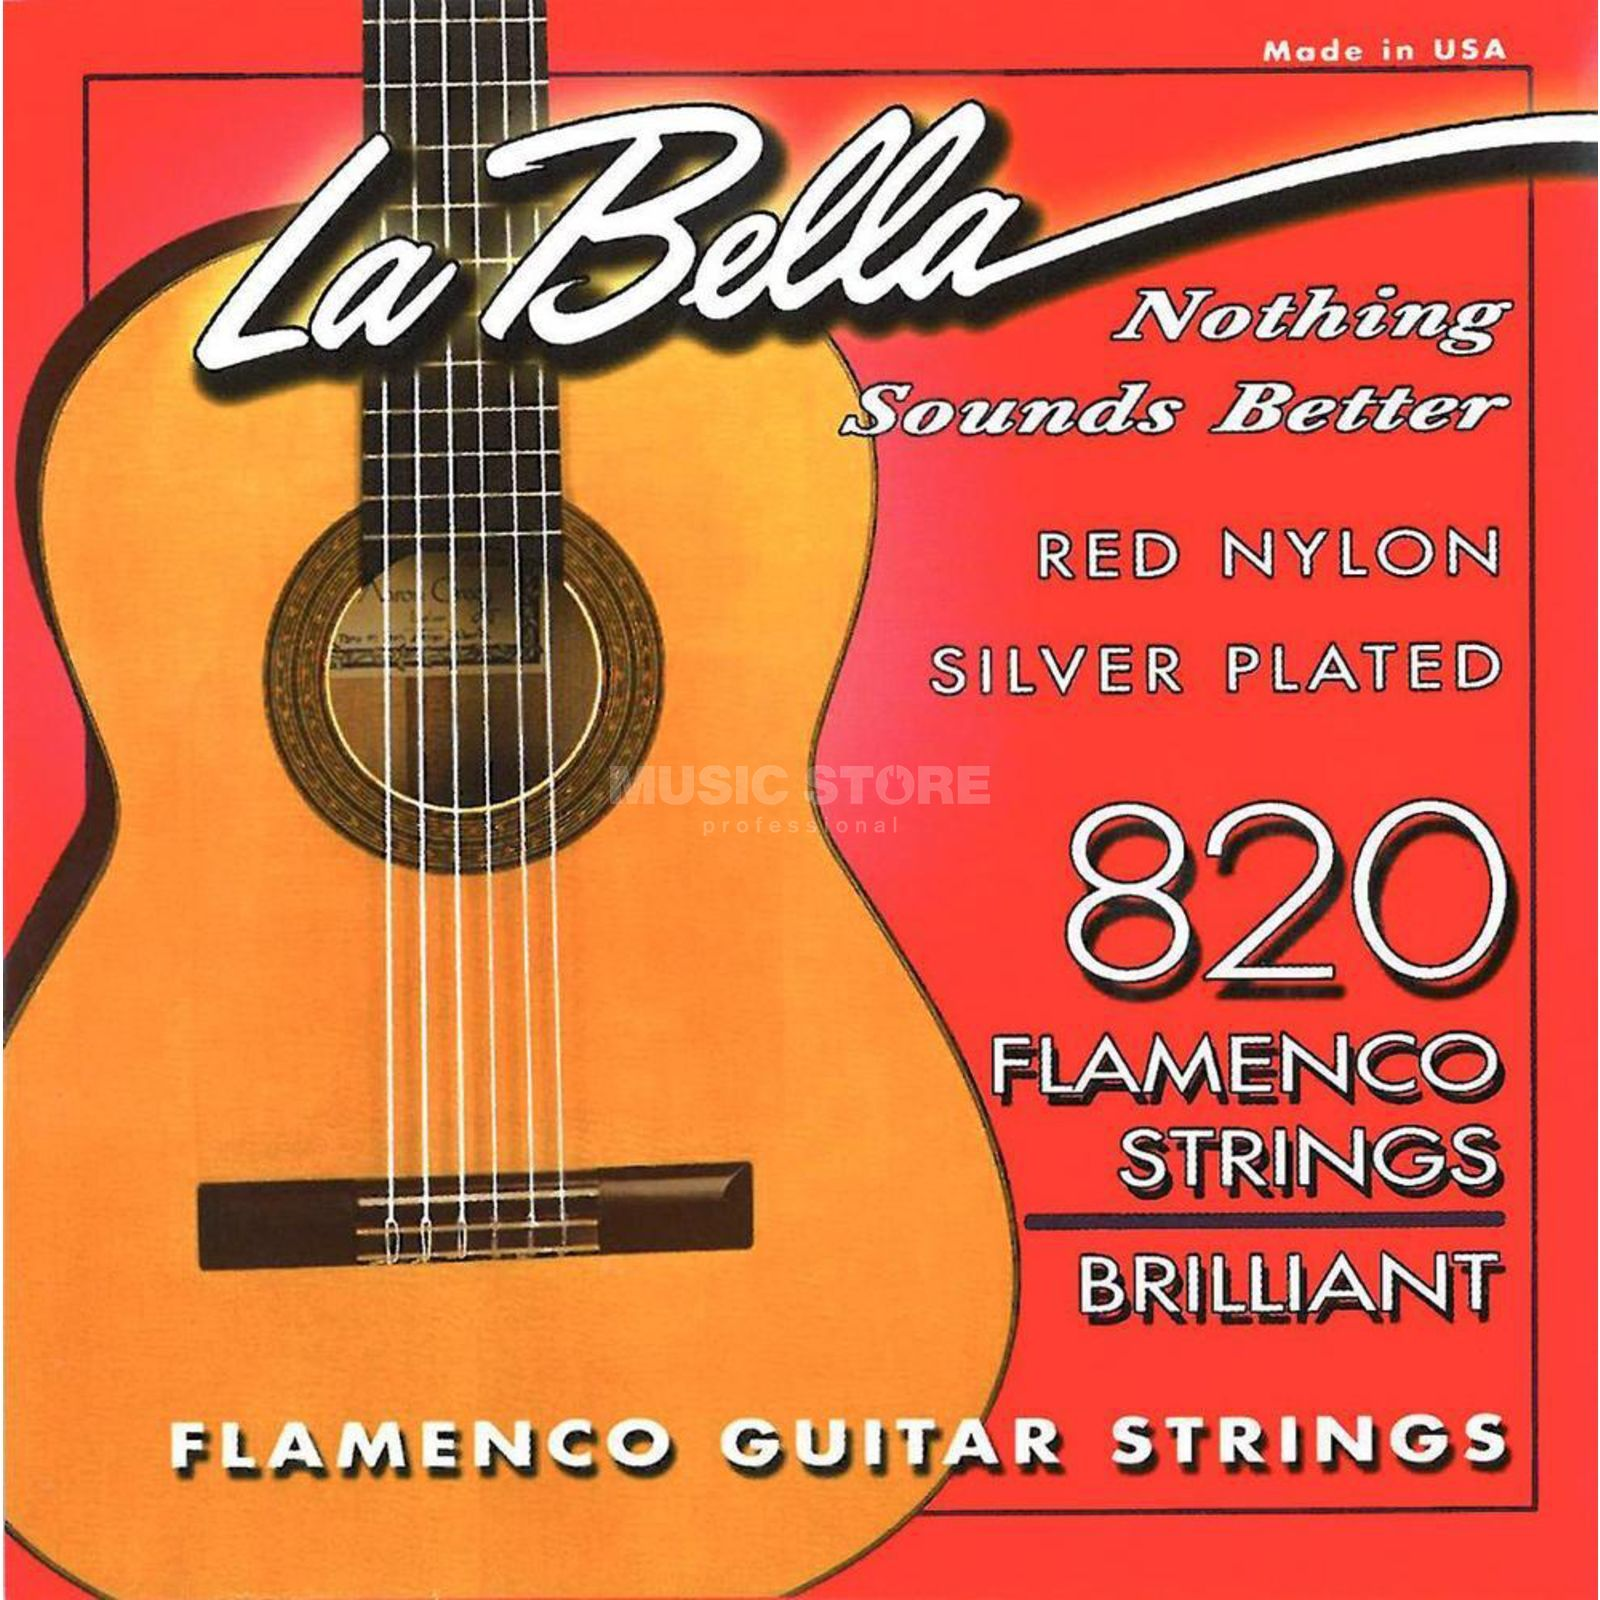 La Bella 820 Nylon Strings Flamenco Red Nylon Silver Product Image